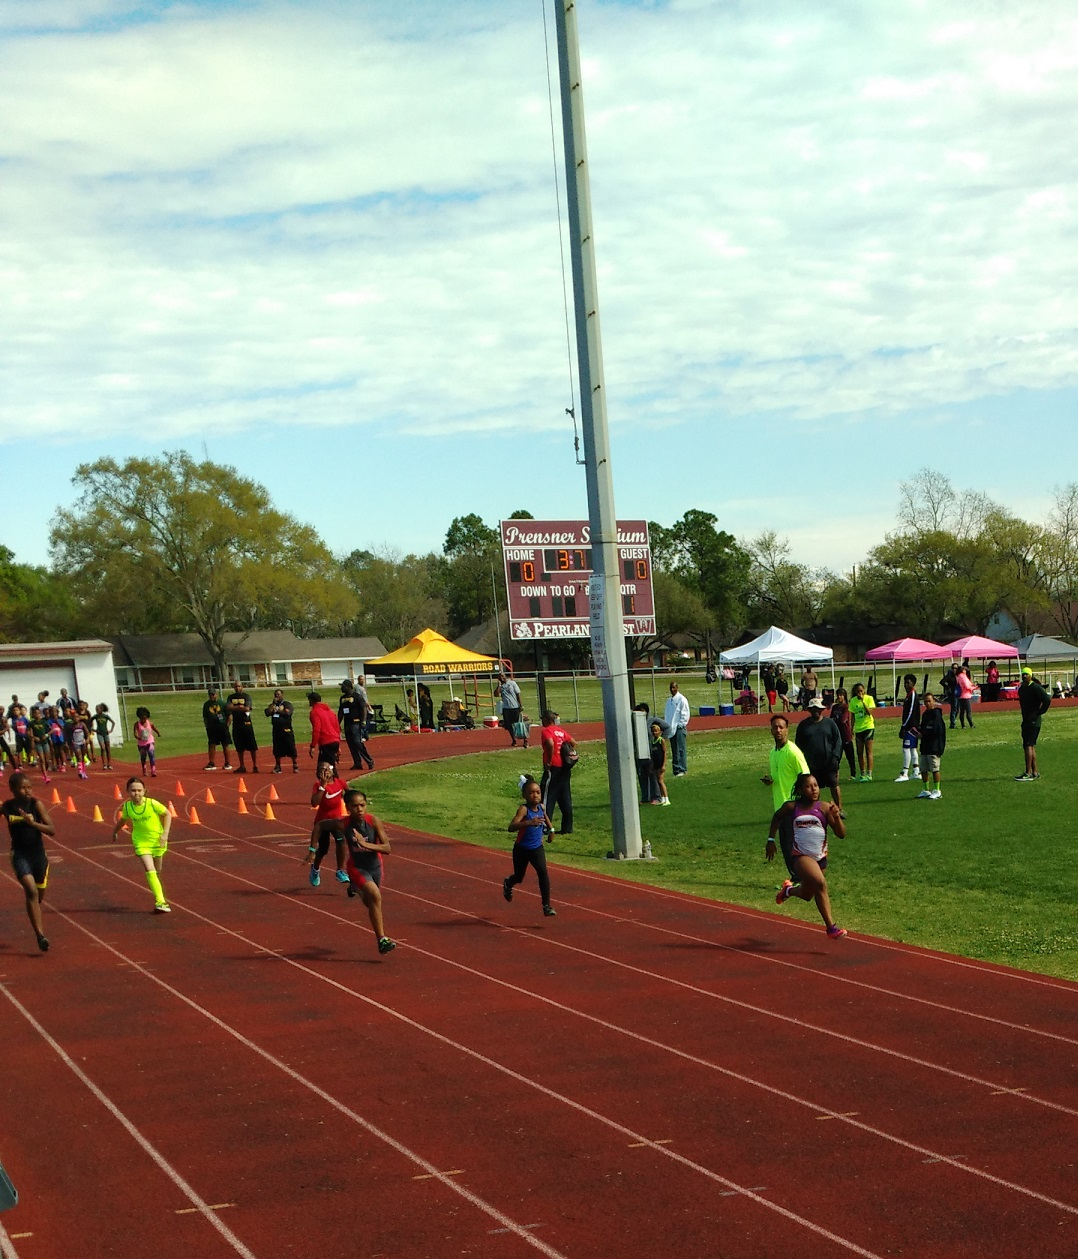 Octavia running the 100